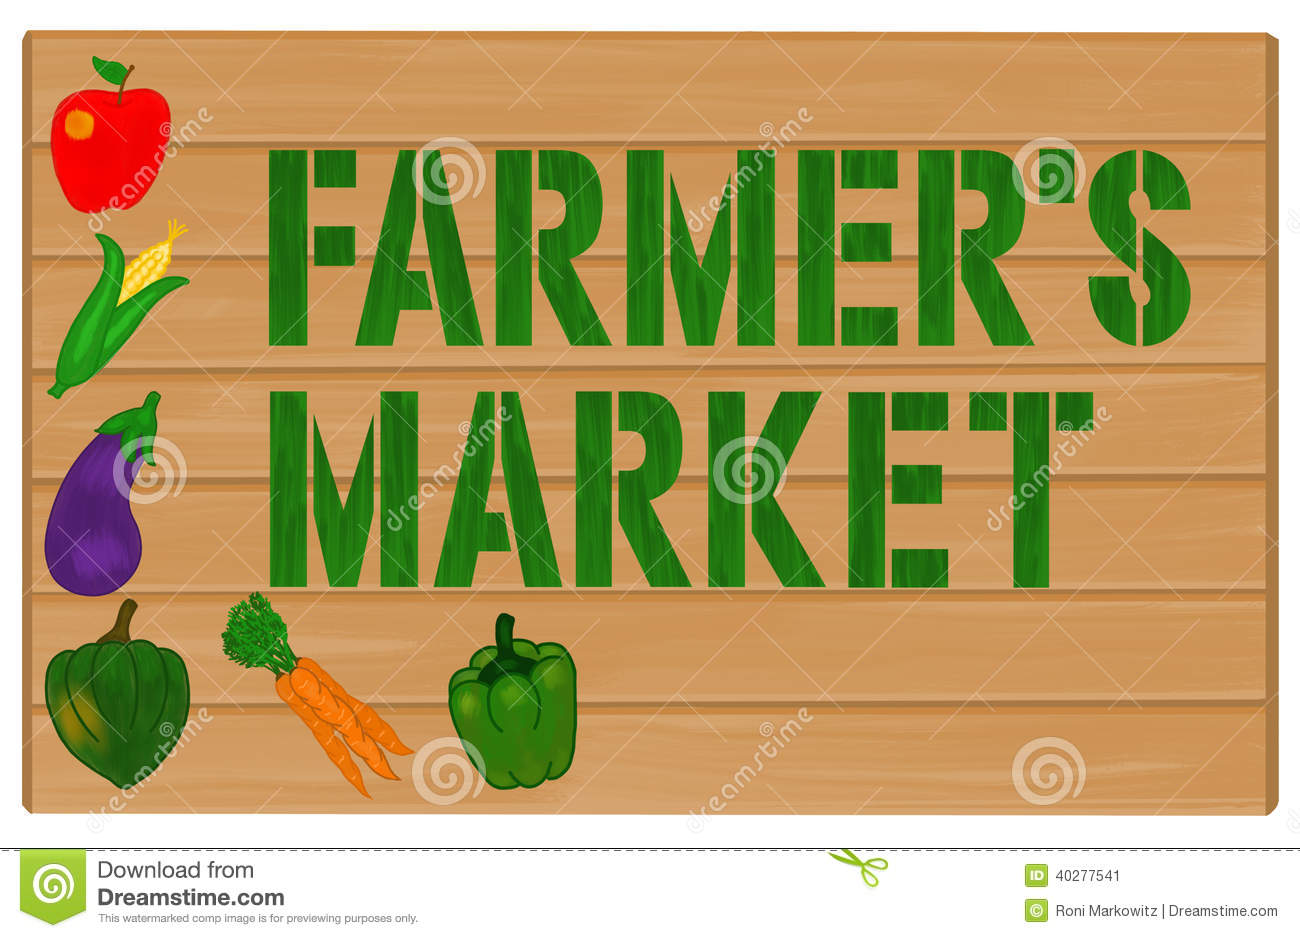 Clip Art Farmers Market Clipart farmers market stock illustrations 1252 vegetables and painted on wood sign image